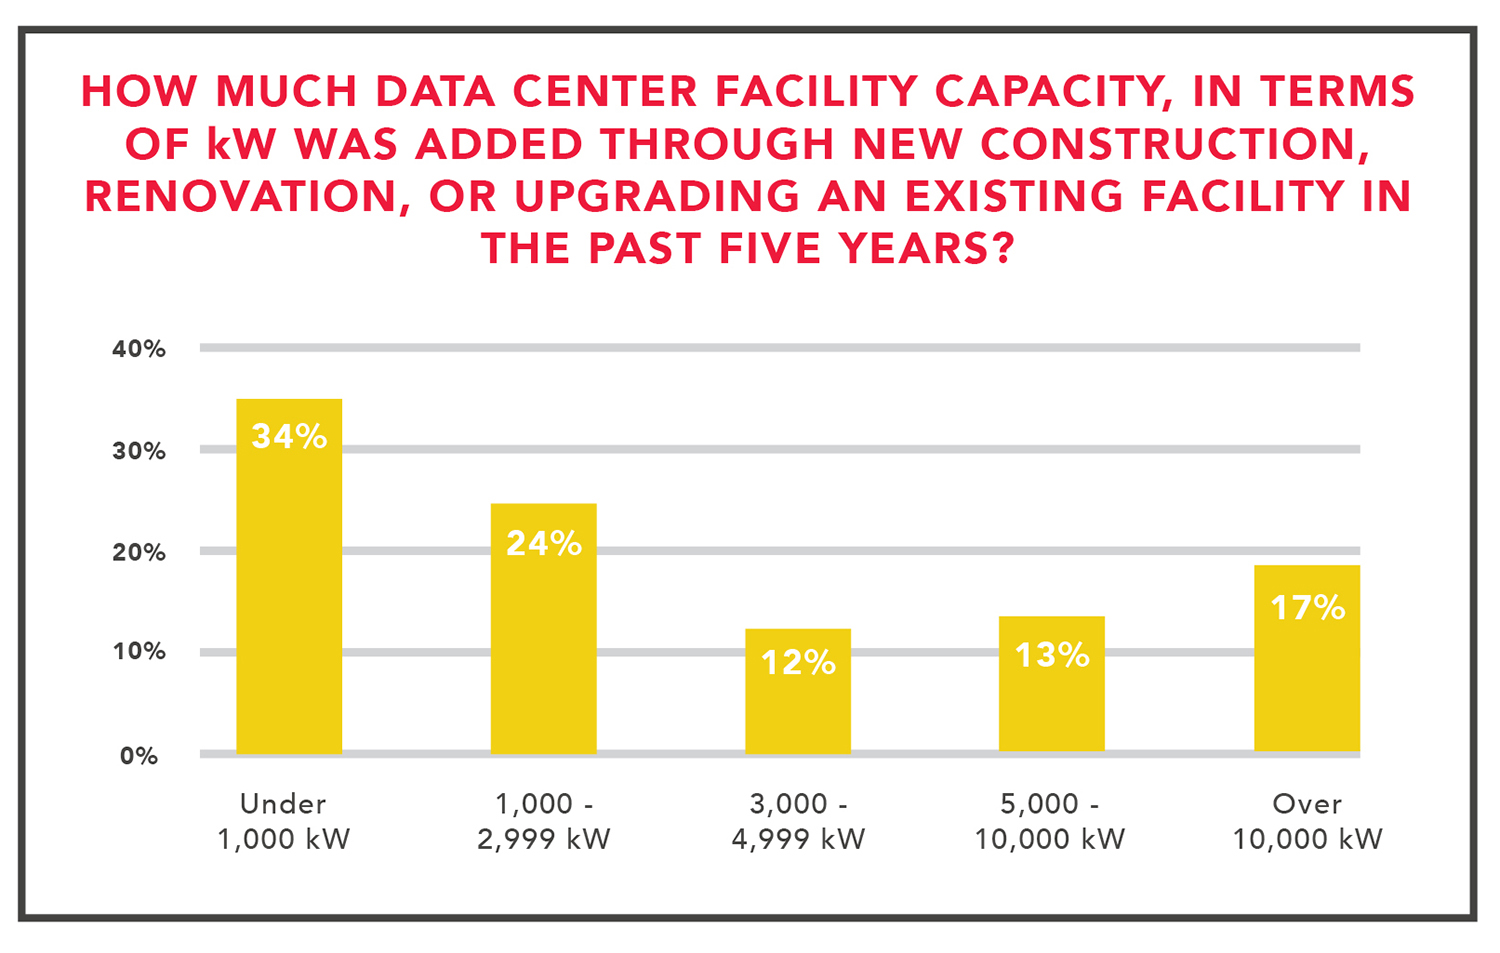 data-center-facility-capacity